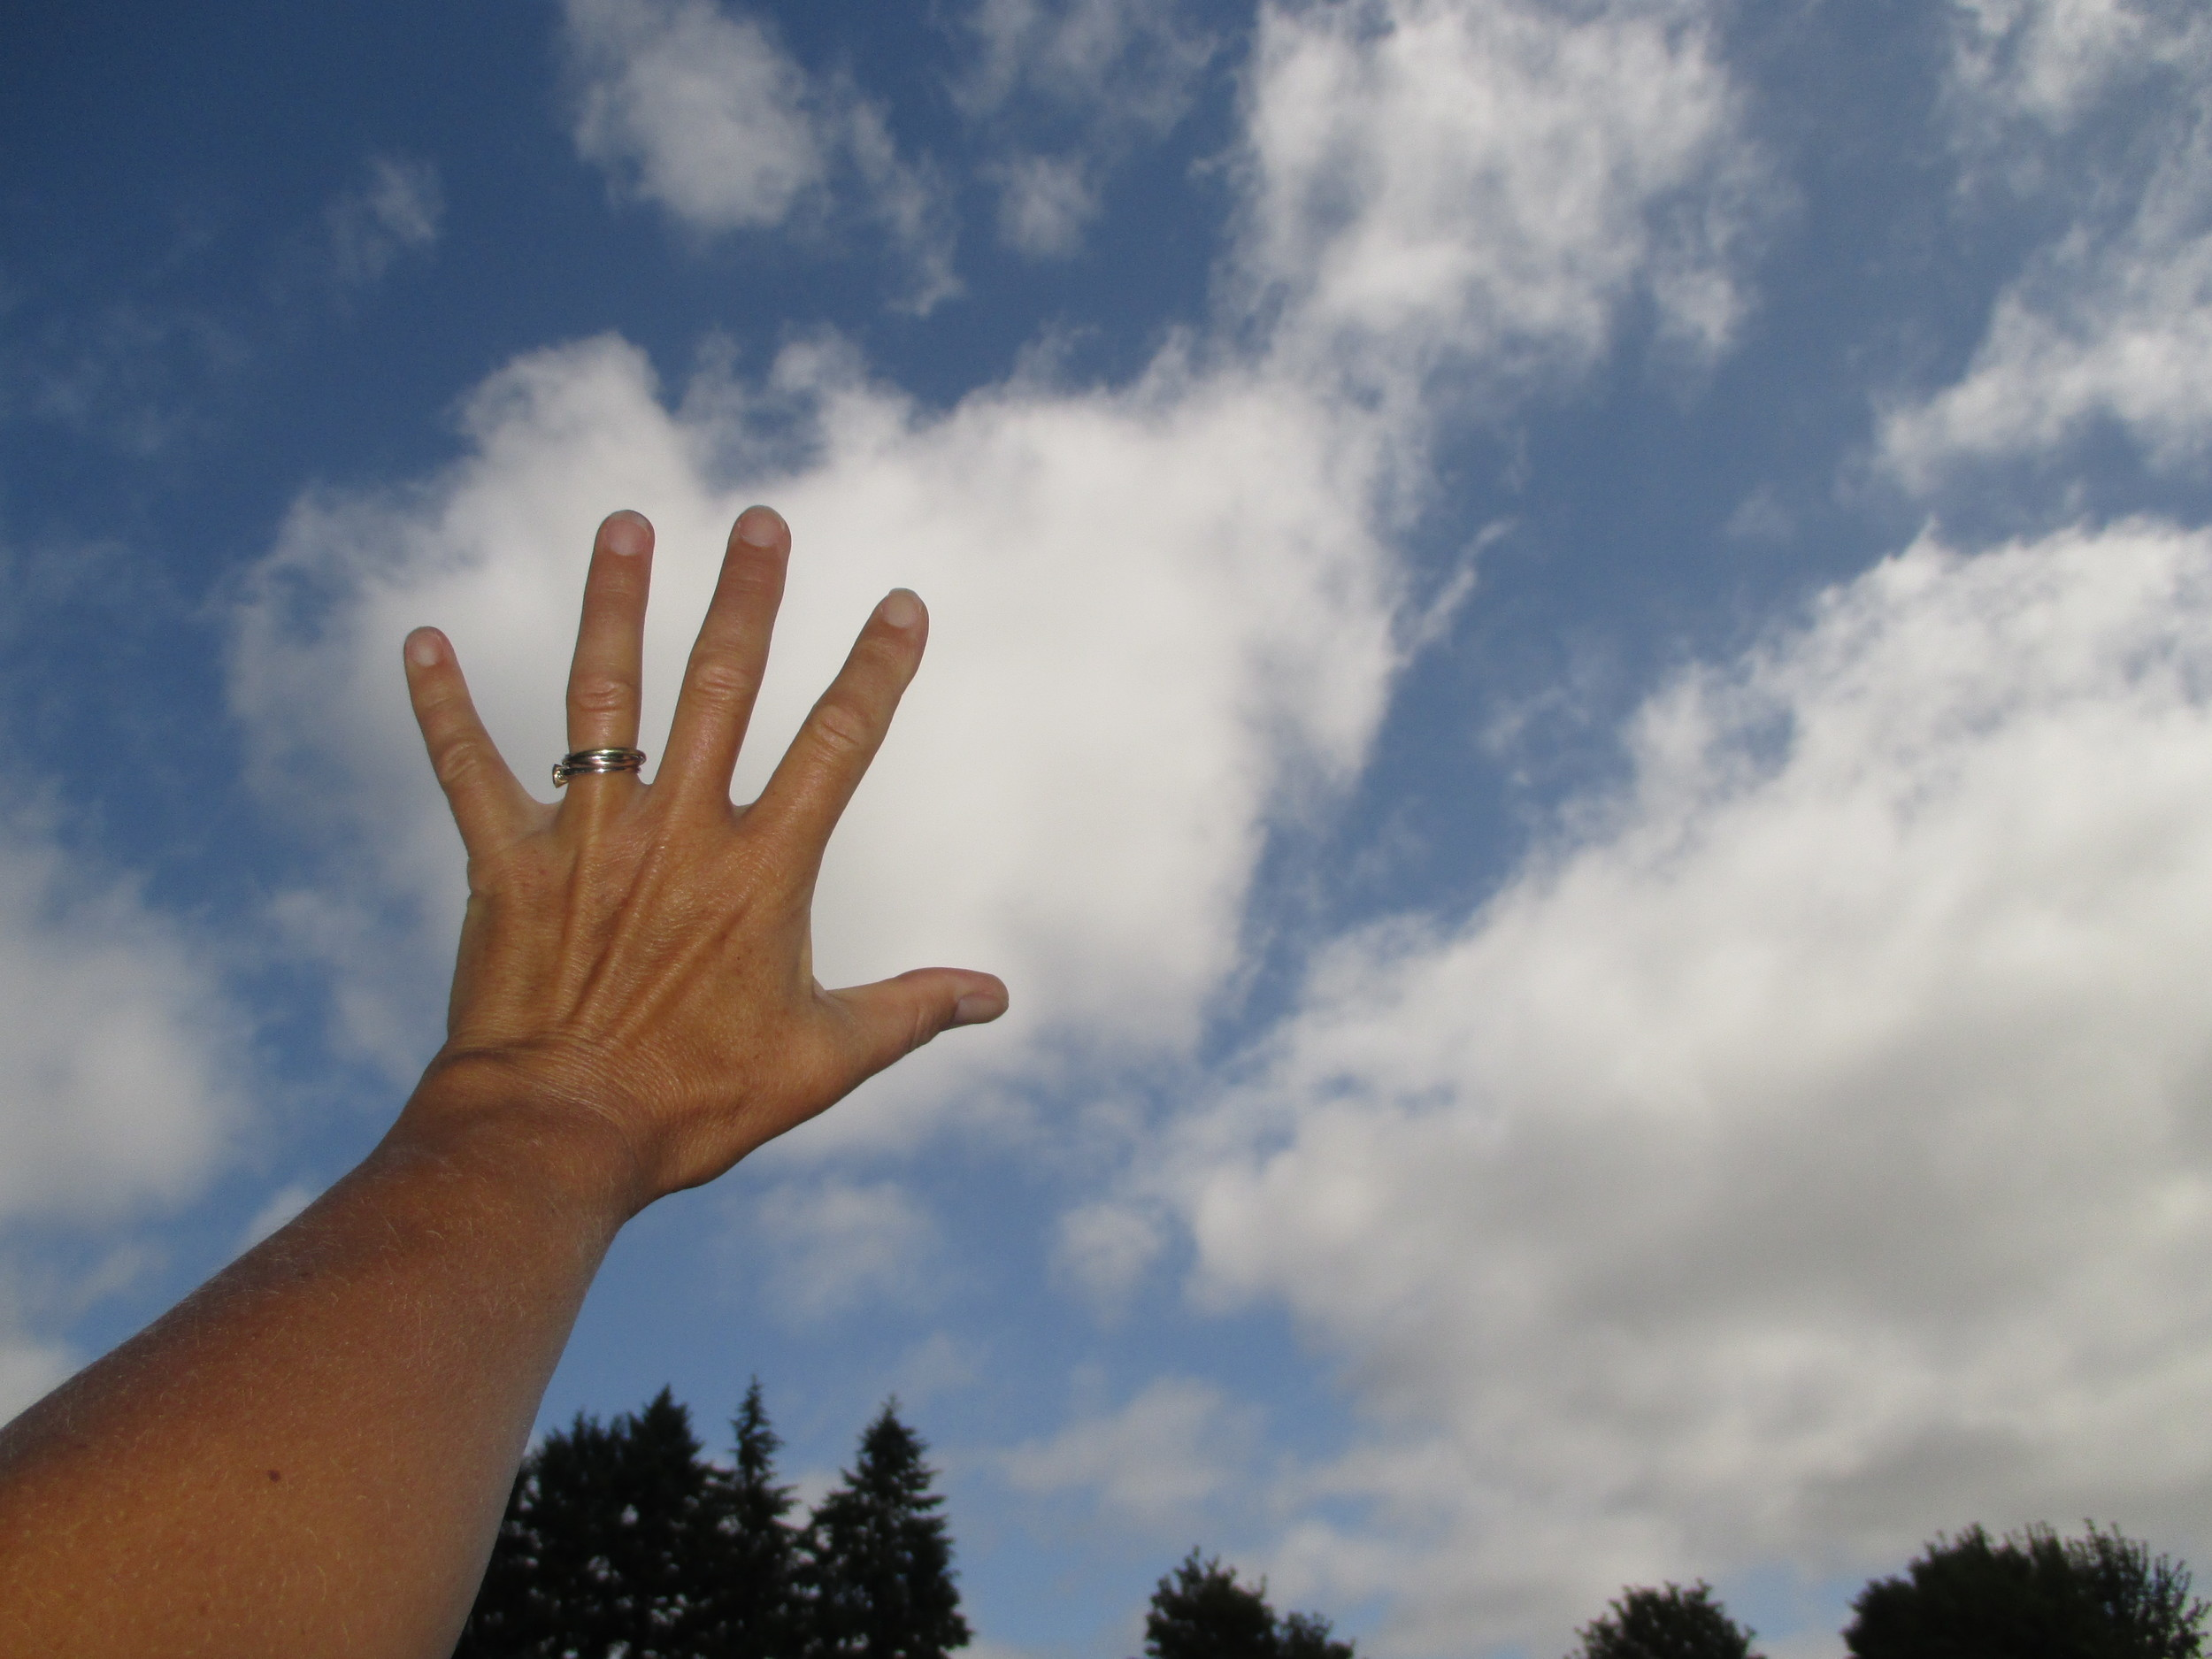 """...these are even bigger than my very large outstretched hand. The clouds don't have well-defined edges, flat bases, or the look of cumulus clouds. This leaves stratocumulus--a large, lumpy cloud that forms at low altitudes and is often formed as layered stratus clouds (fog) rise as they move inland over low hills. These clouds come in a variety known as stratocumulus fractus, which are the smaller (factions) of the stratocumulus cloud as it breaks apart or evaporates.  Sure enough, when I checked the National Weather Service's forecast discussion, the morning cloud cover was described as """"low clouds"""" and """"stratus"""" and were predicted to rise, evaporate, and give way to mostly sunny skies."""